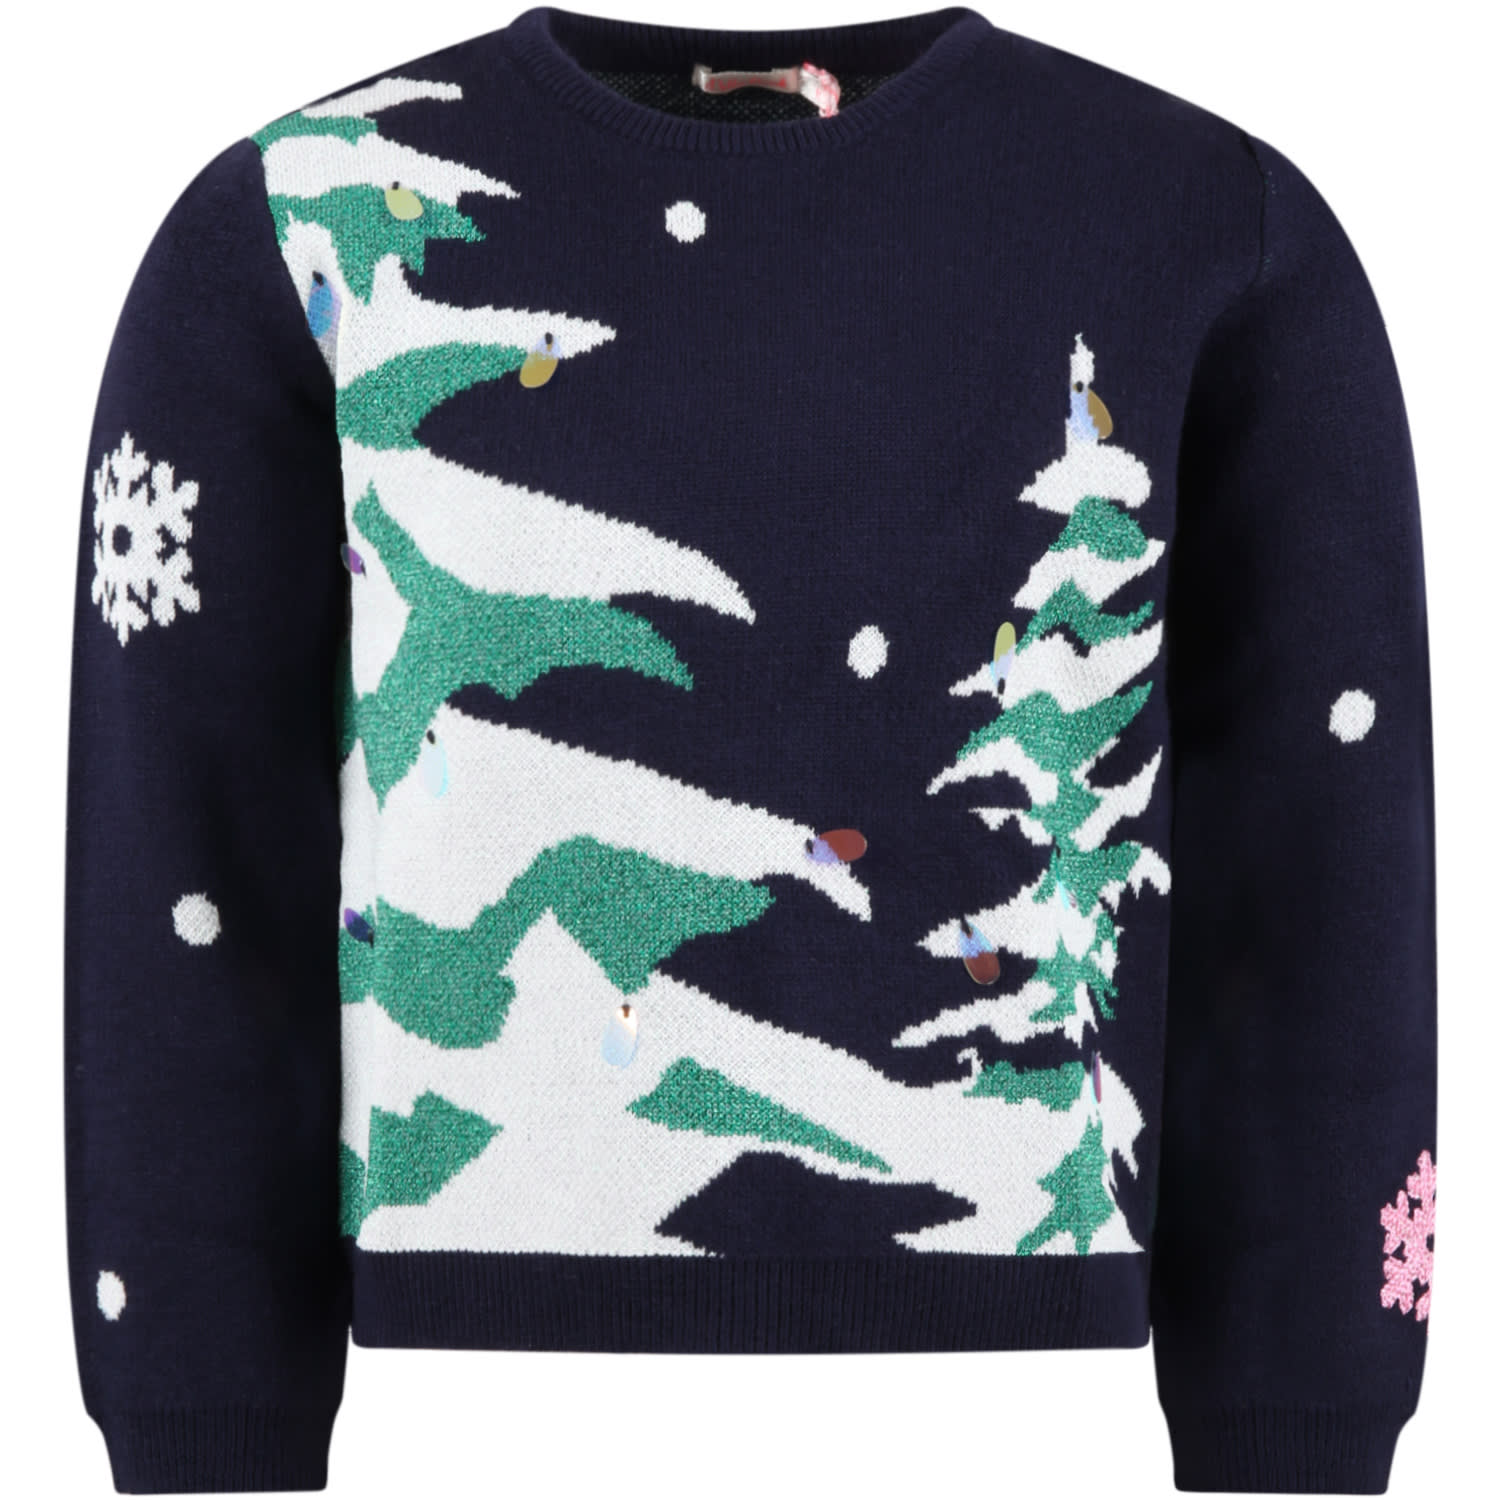 Blue Sweater For Girl With Trees